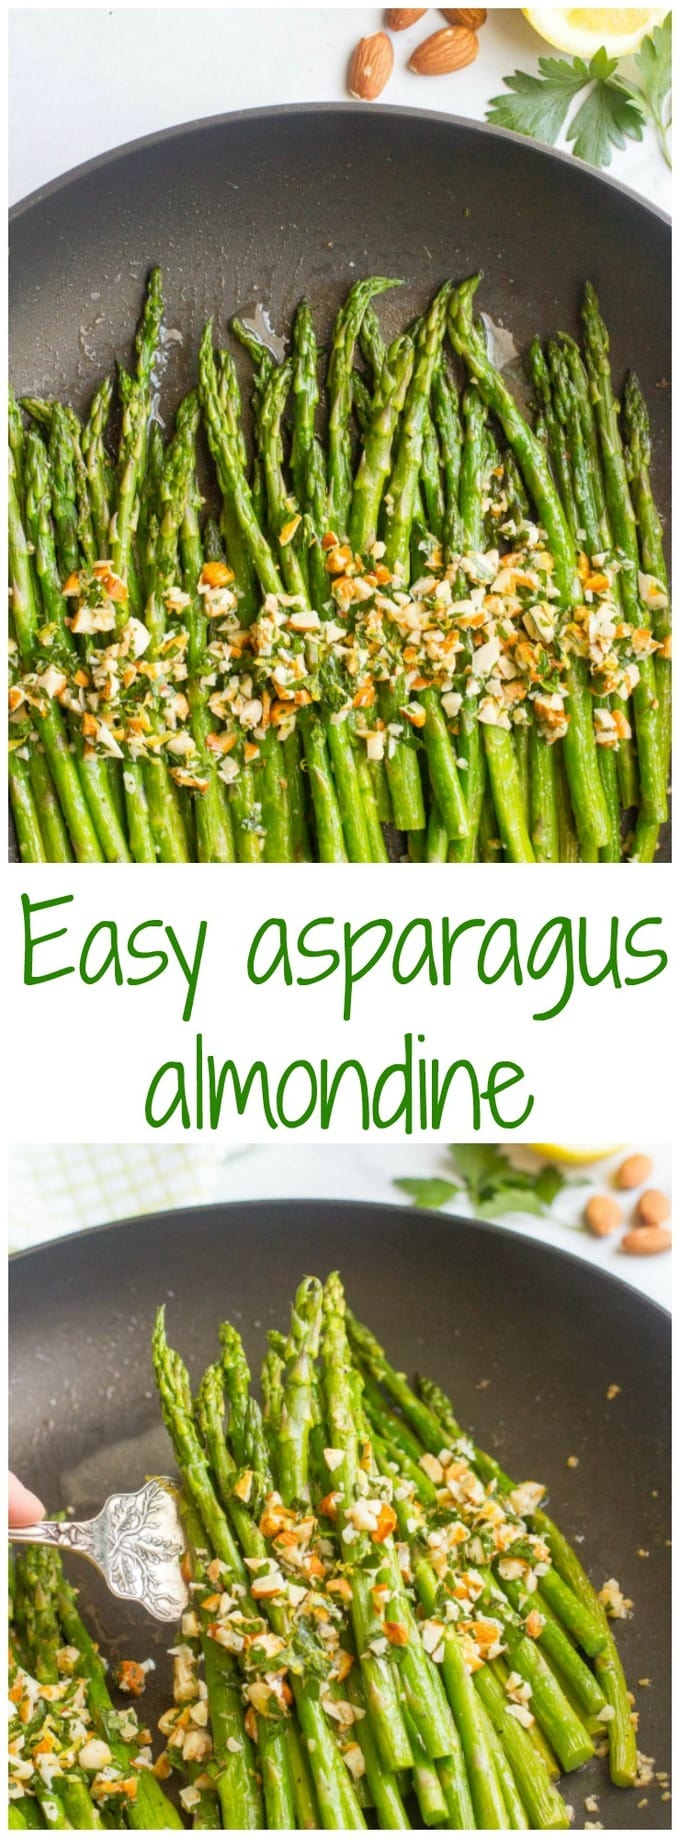 Asparagus almondine is a super easy - and fast - side dish that's sure to impress!